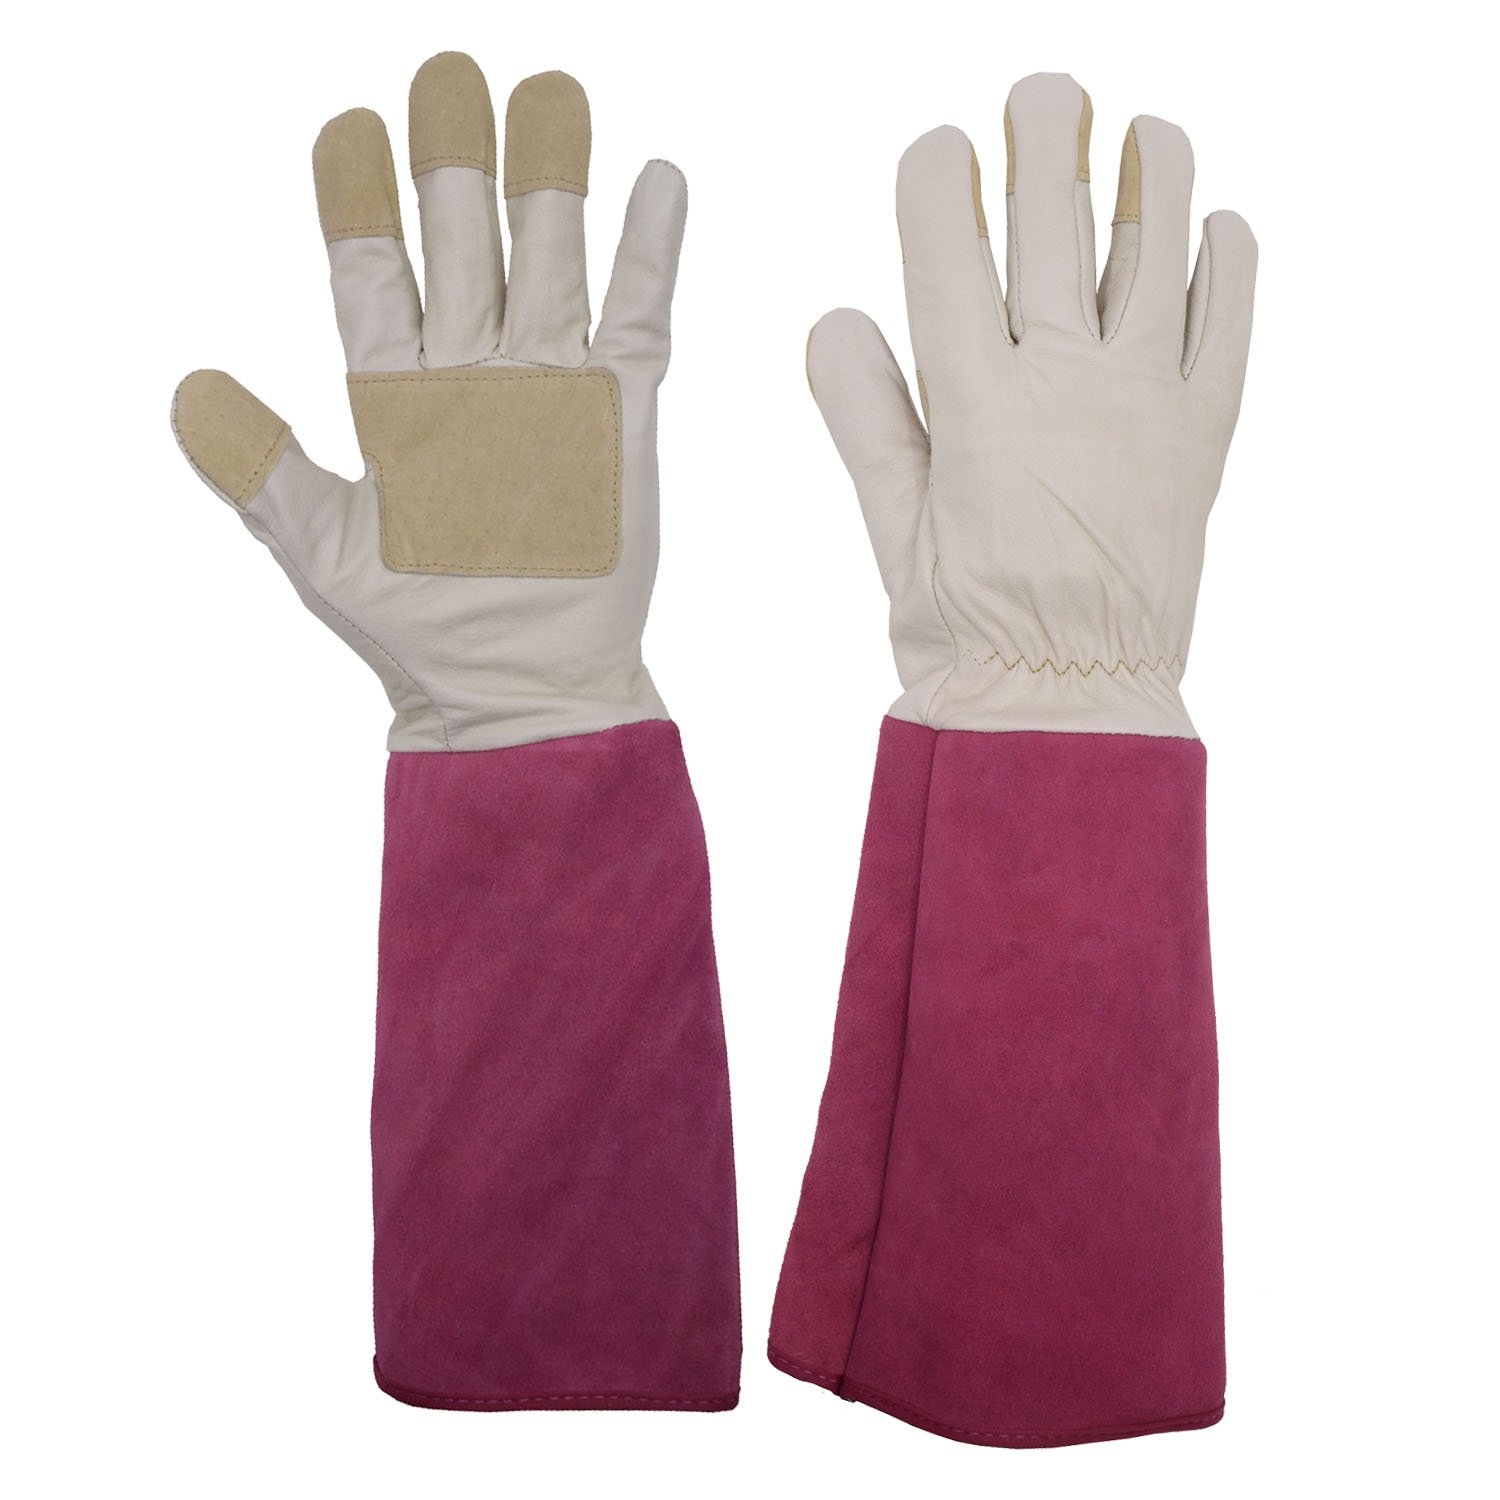 Rose Pruning Gardening Gloves for Men & Women, Thornproof Long Gauntlet Gloves, Pigskin Leather - Breathable & Durability (Medium)